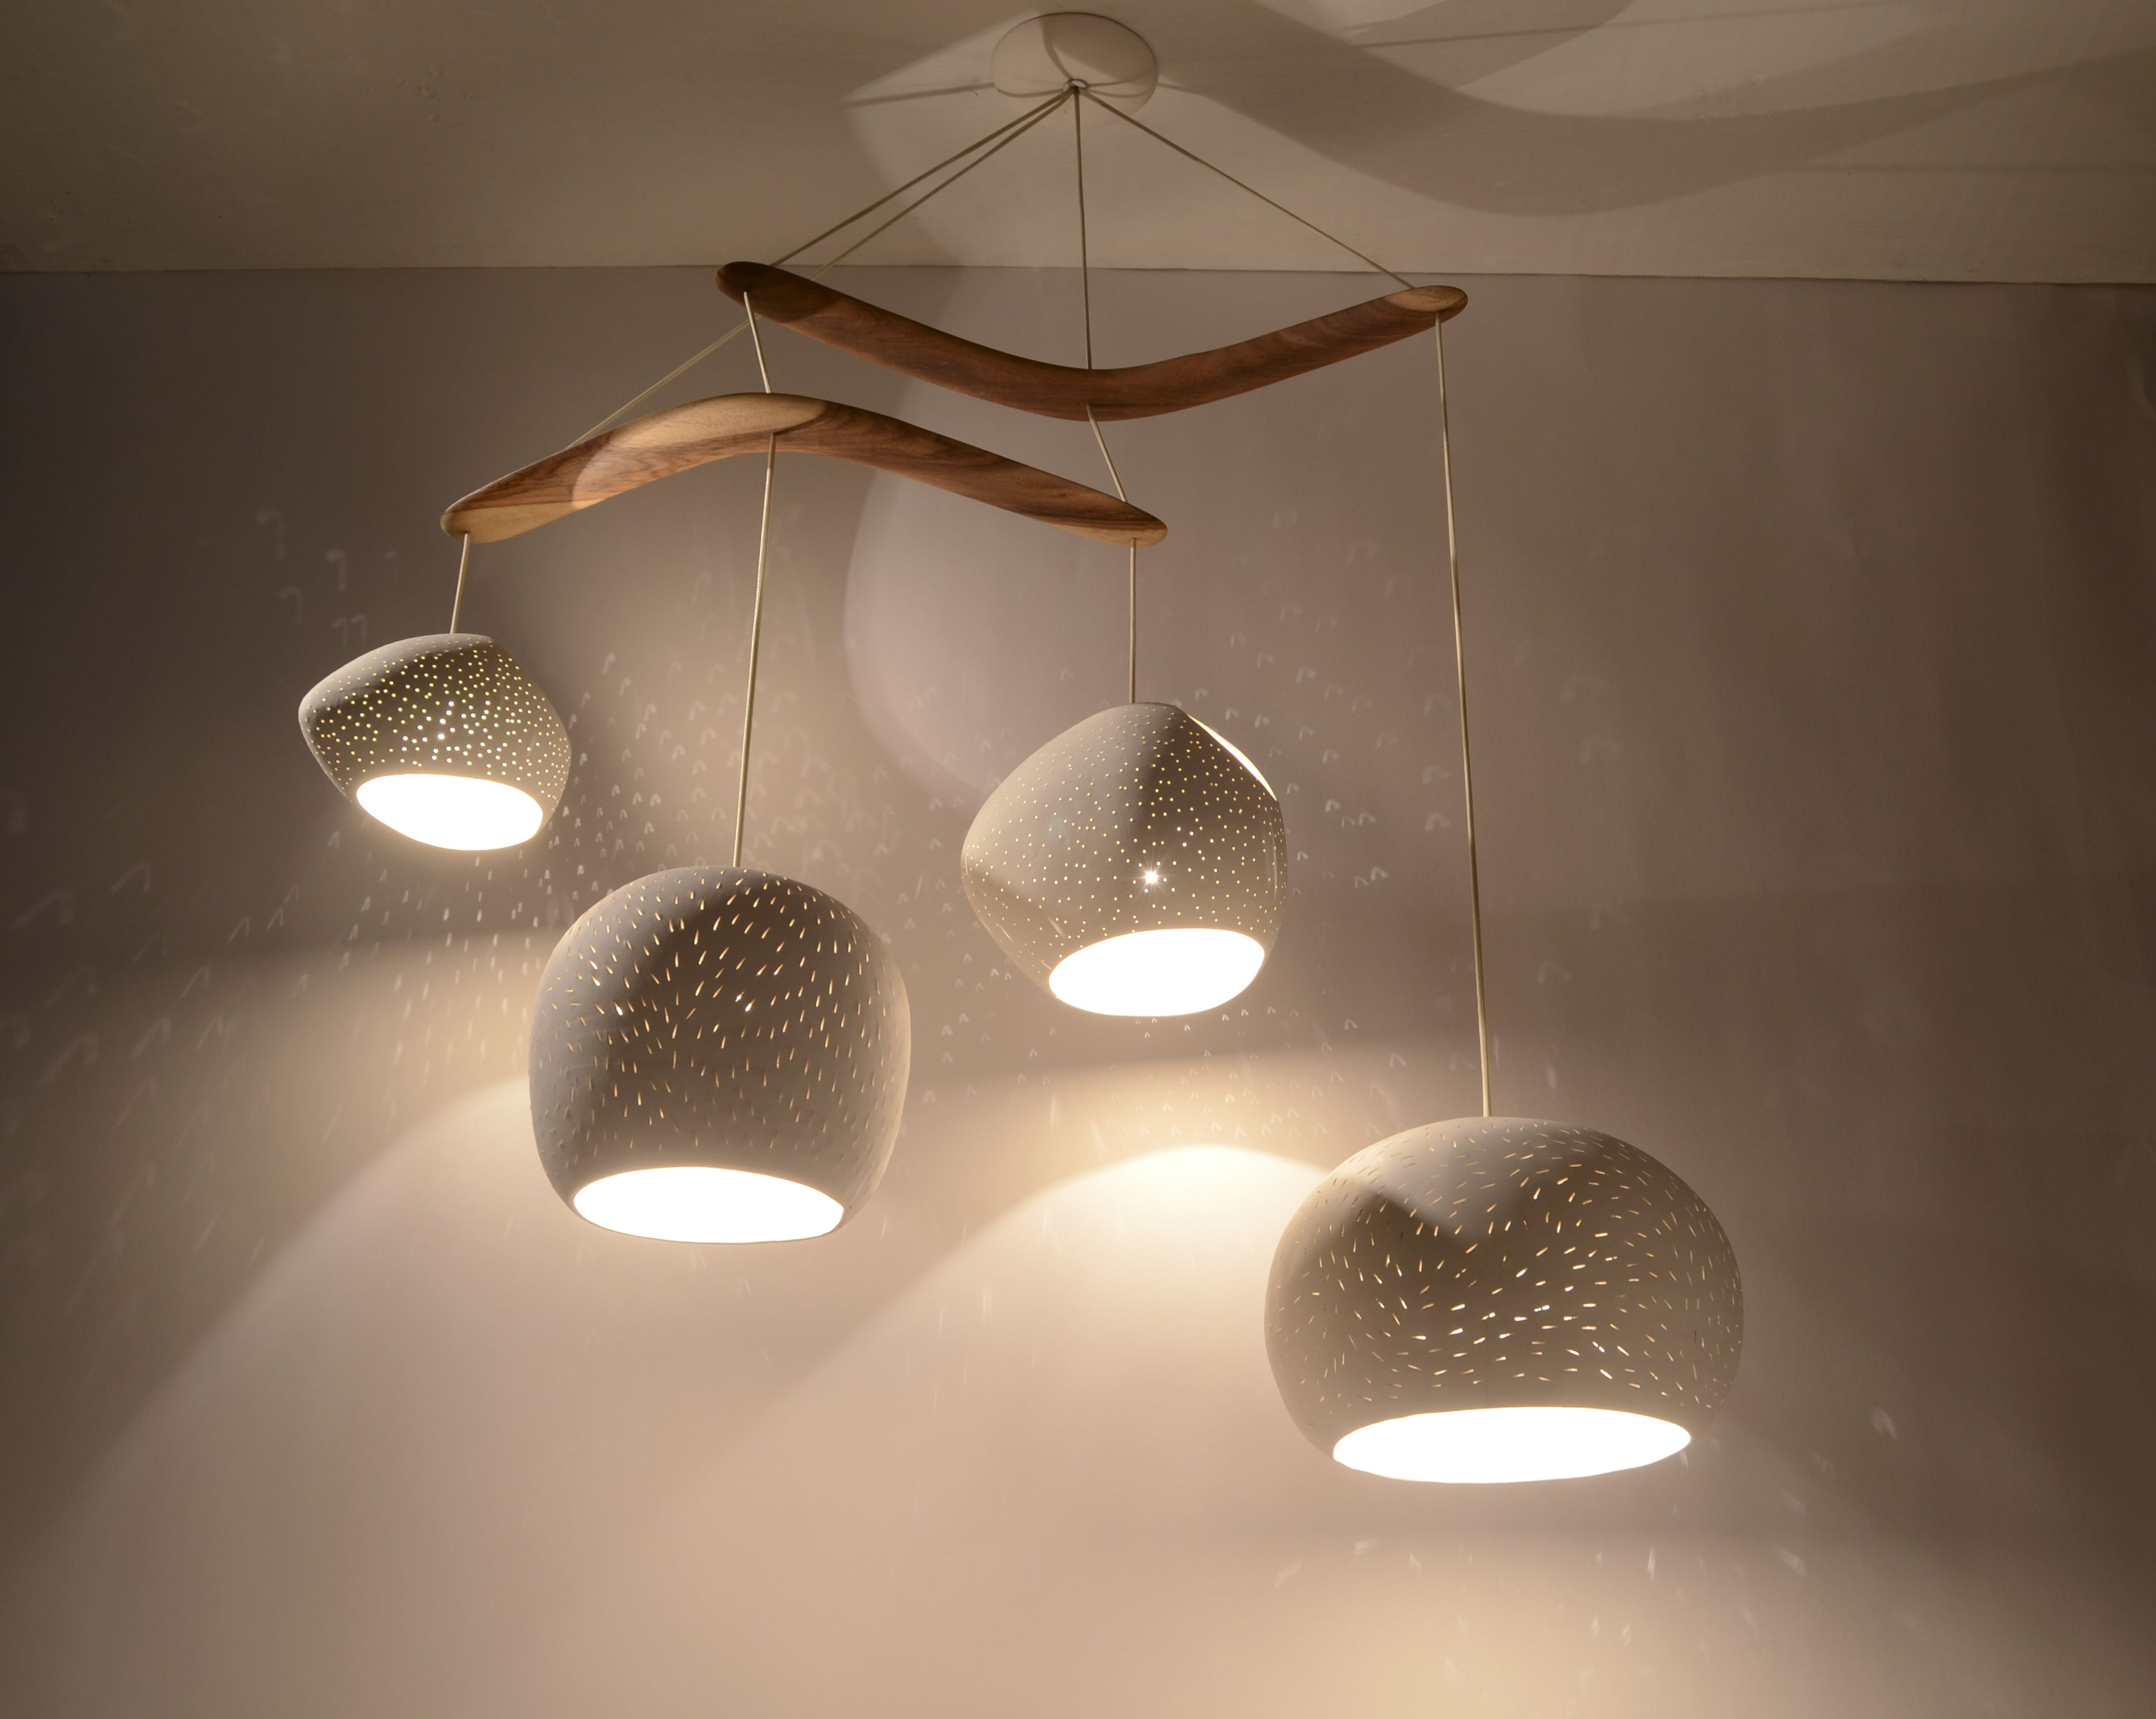 Claylight boomerang ceramic chandelier for the home pinterest claylight boomerang ceramic chandelier arubaitofo Choice Image